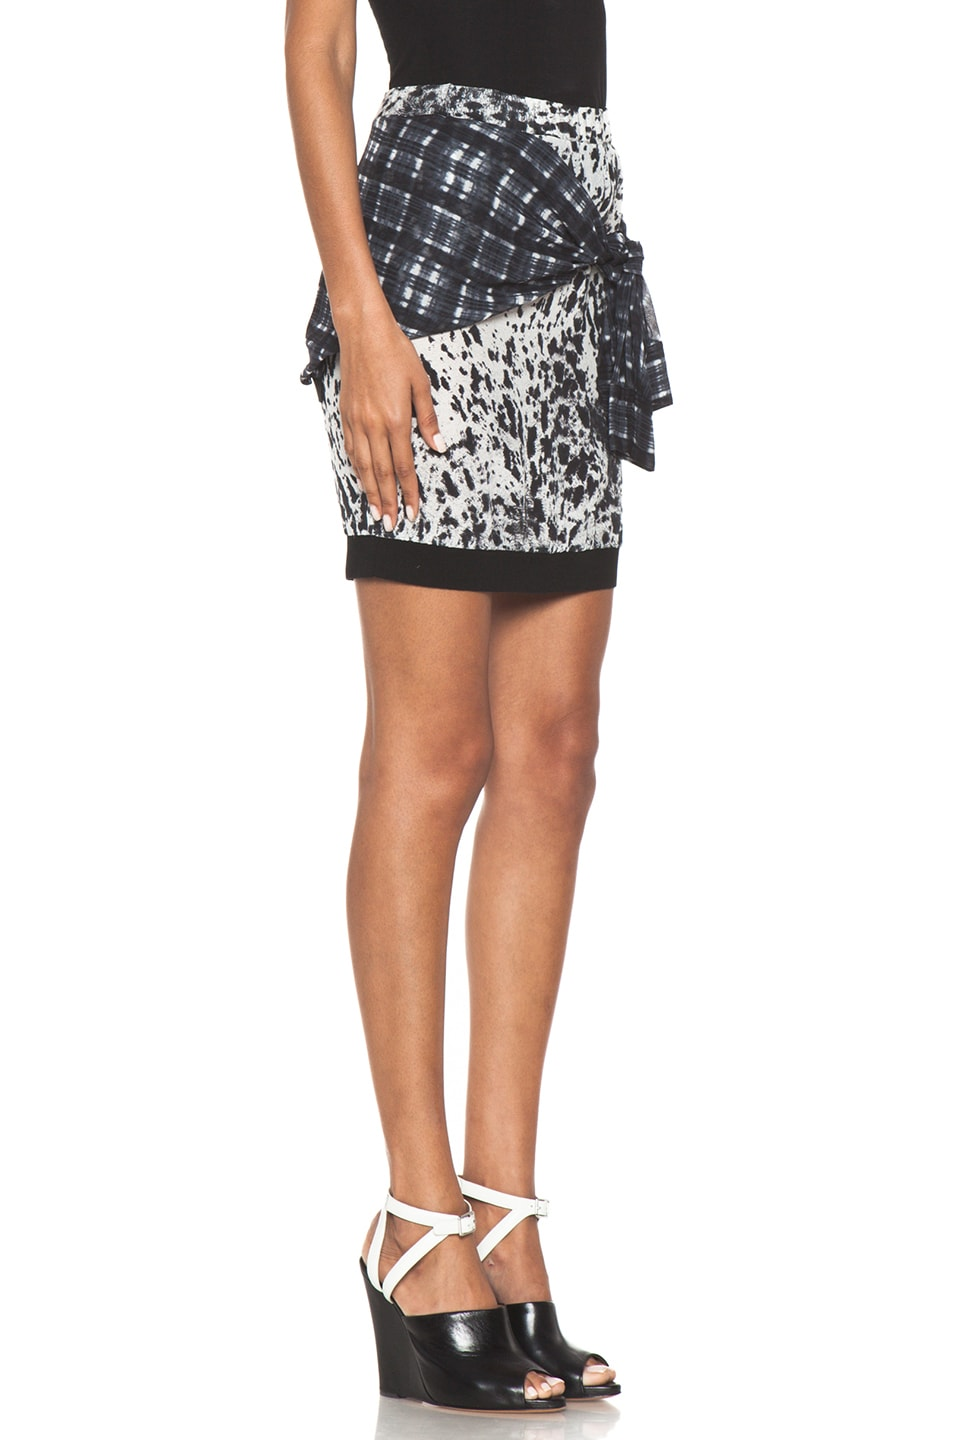 Image 3 of 3.1 phillip lim Spotted Pony Print Skirt with Shirt Print in Antique White